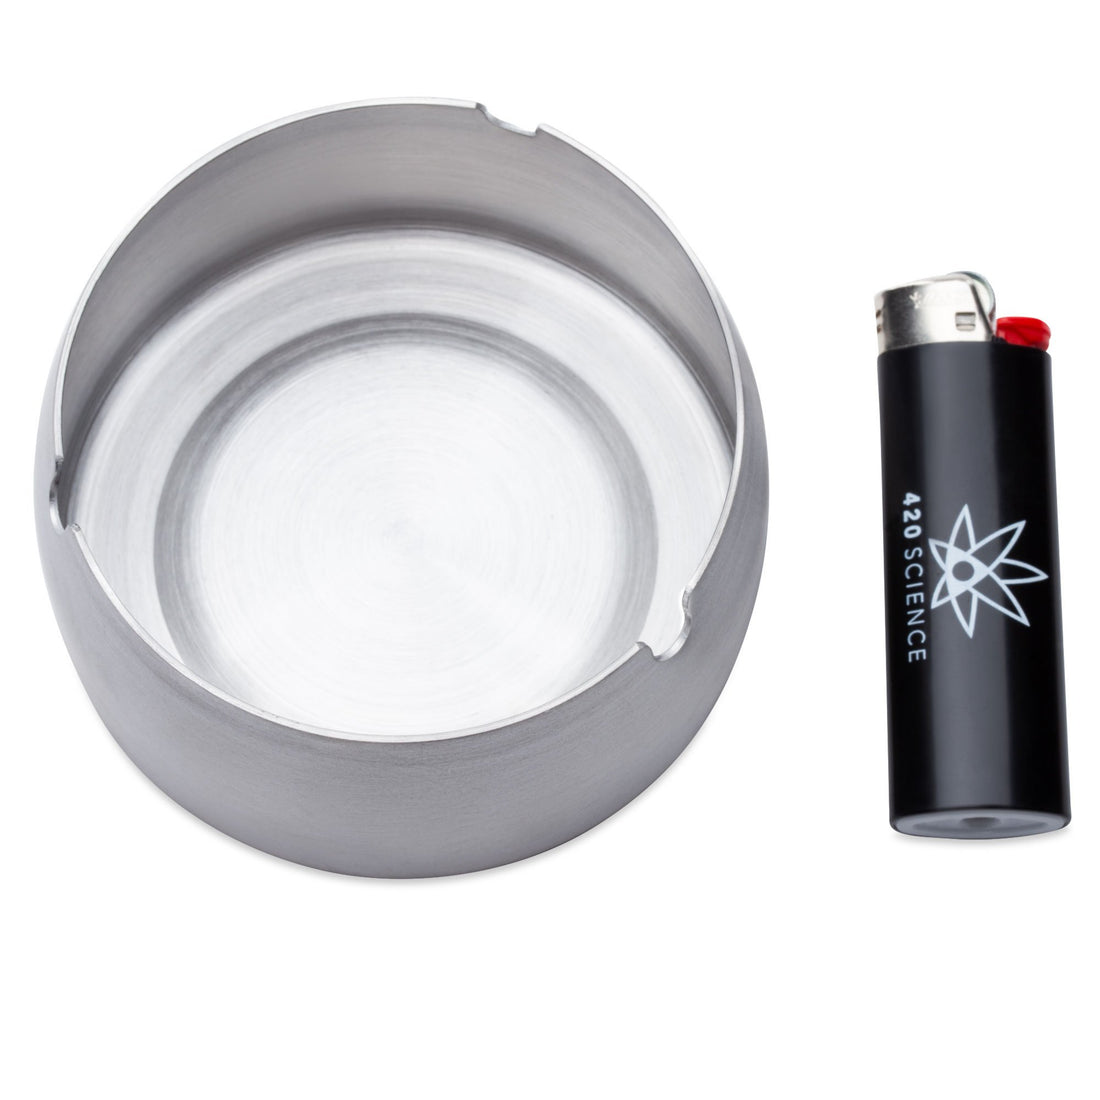 420 Science Stainless Steel Ashtray - Large